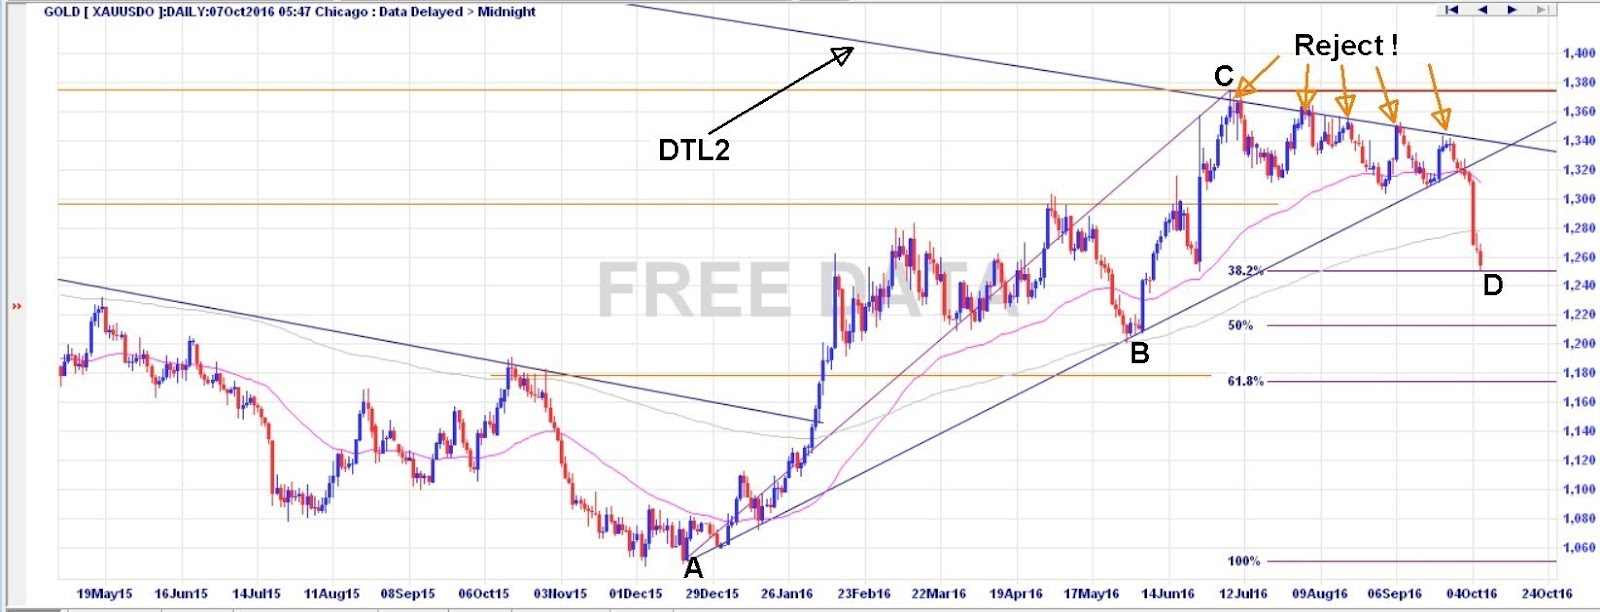 Daily gold spot chart showing Fibonacci retracements